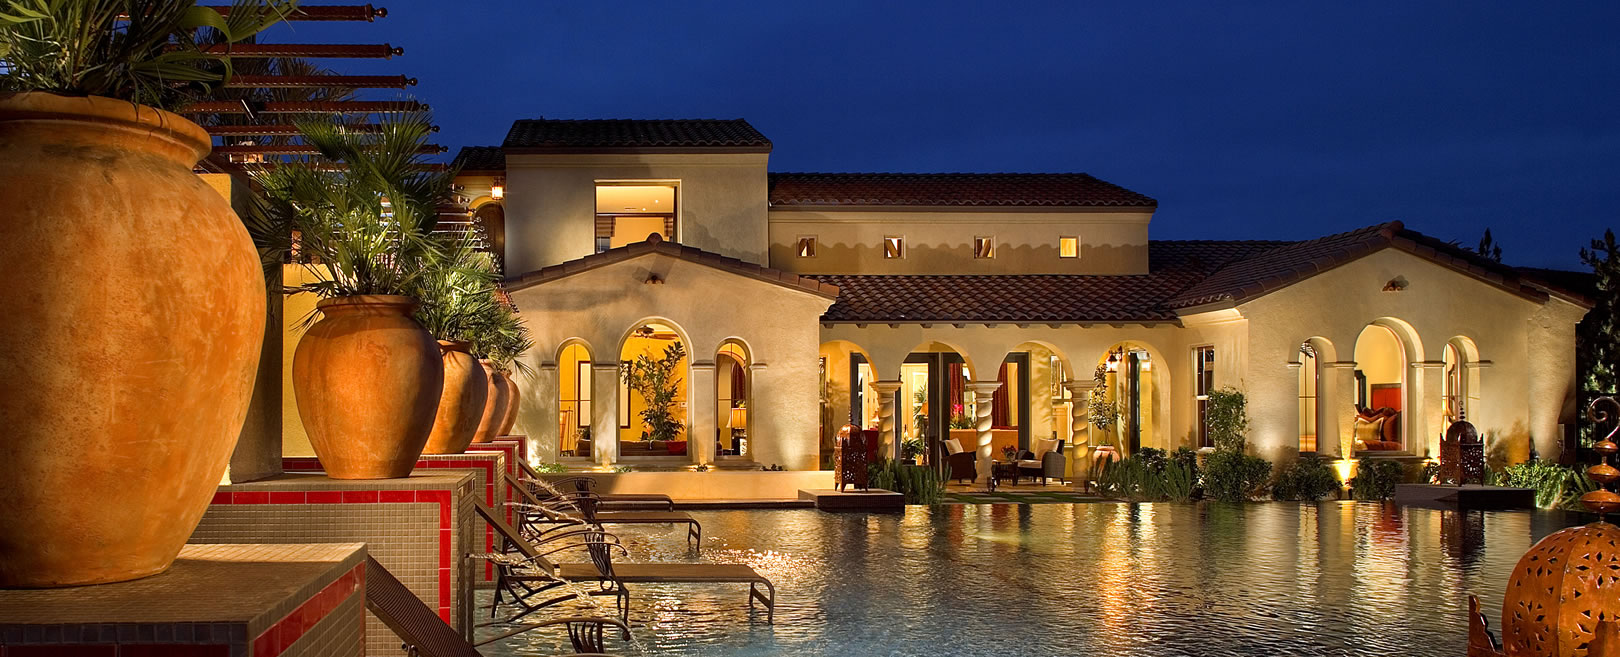 Southern California Residential, Commerical & Municipal Lighting